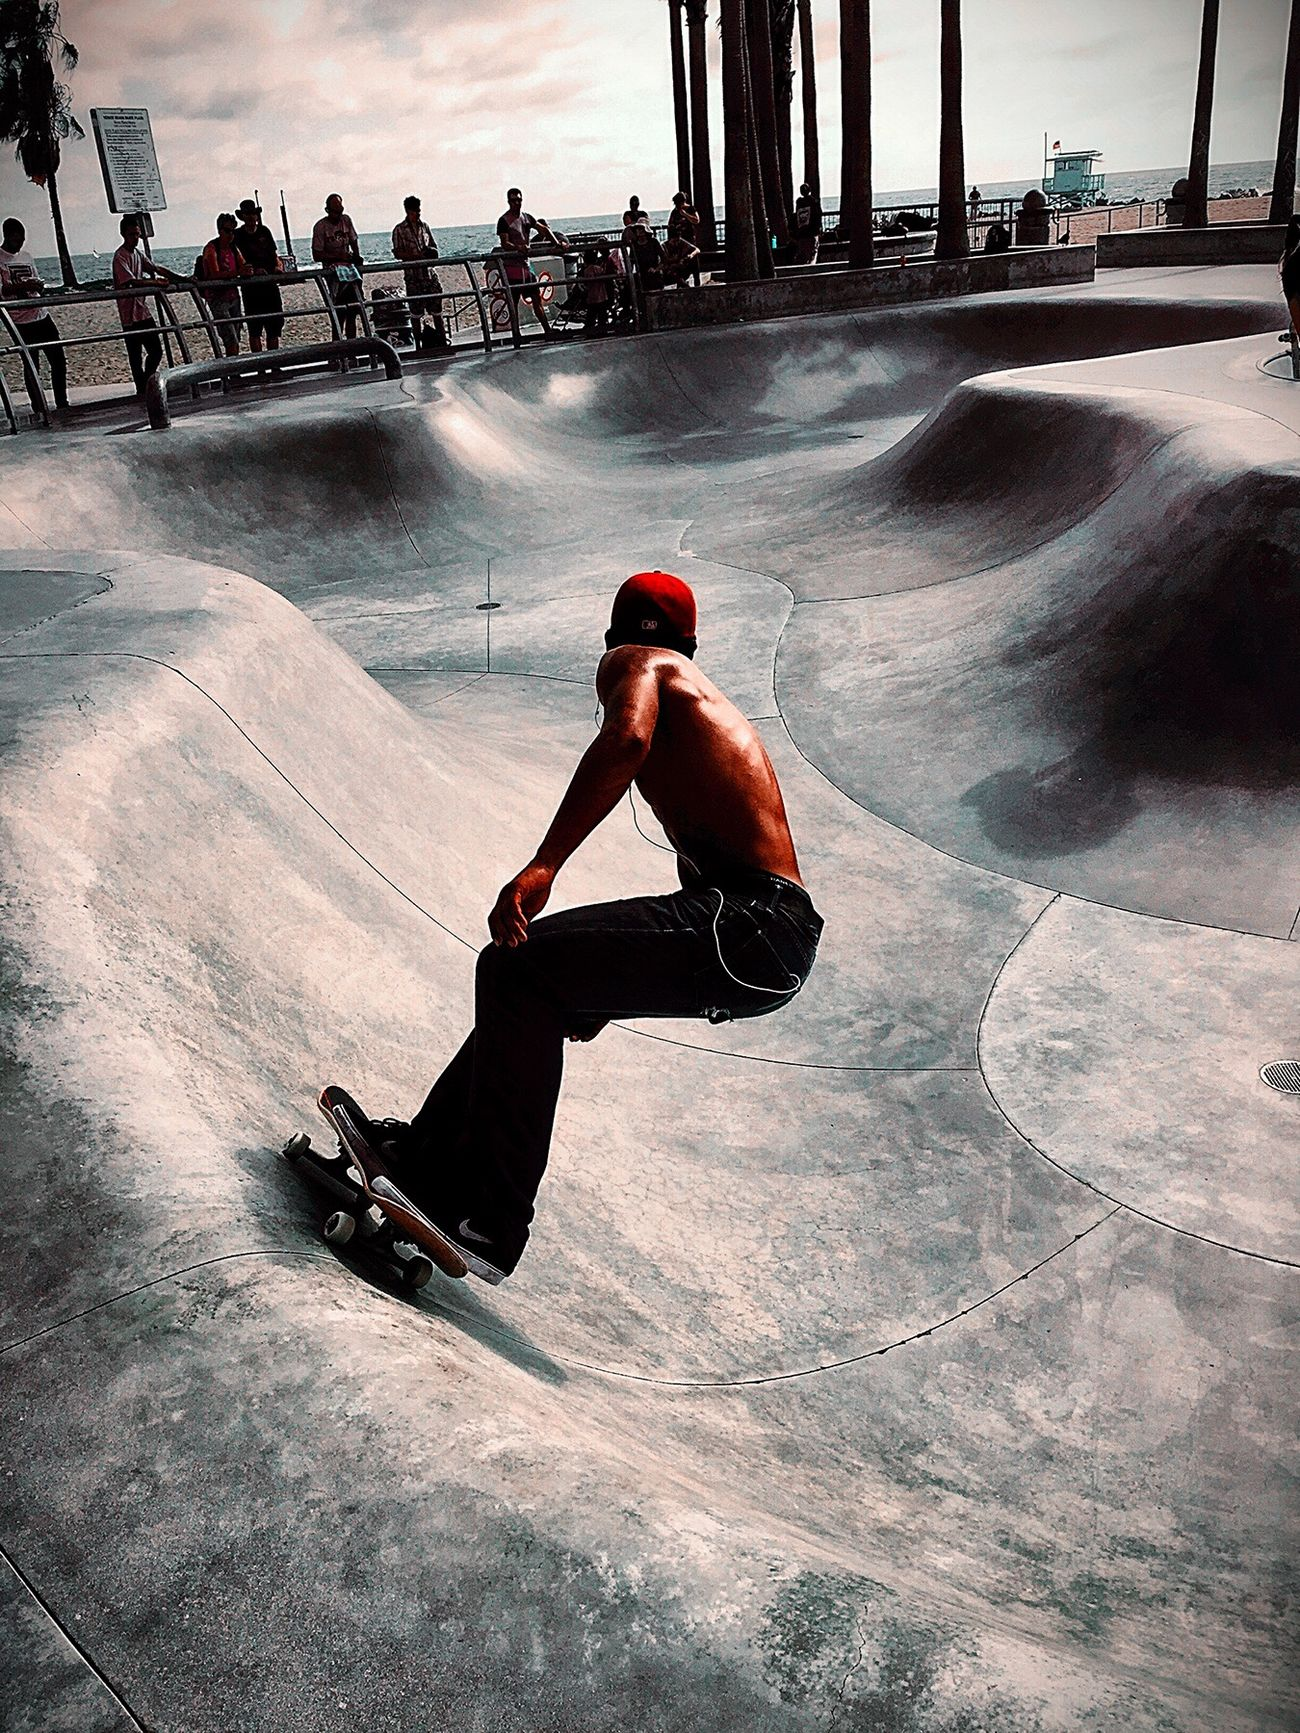 Skateboarding Skate Full Length Sunlight Real People Skateboard Park Leisure Activity Adults Only People Outdoors Young Adult City Adult Performance Day One Person Only Women Skateboard Skatepark Venice Beach Streetphotography Streetlife Move Good Vibes California Dreaming